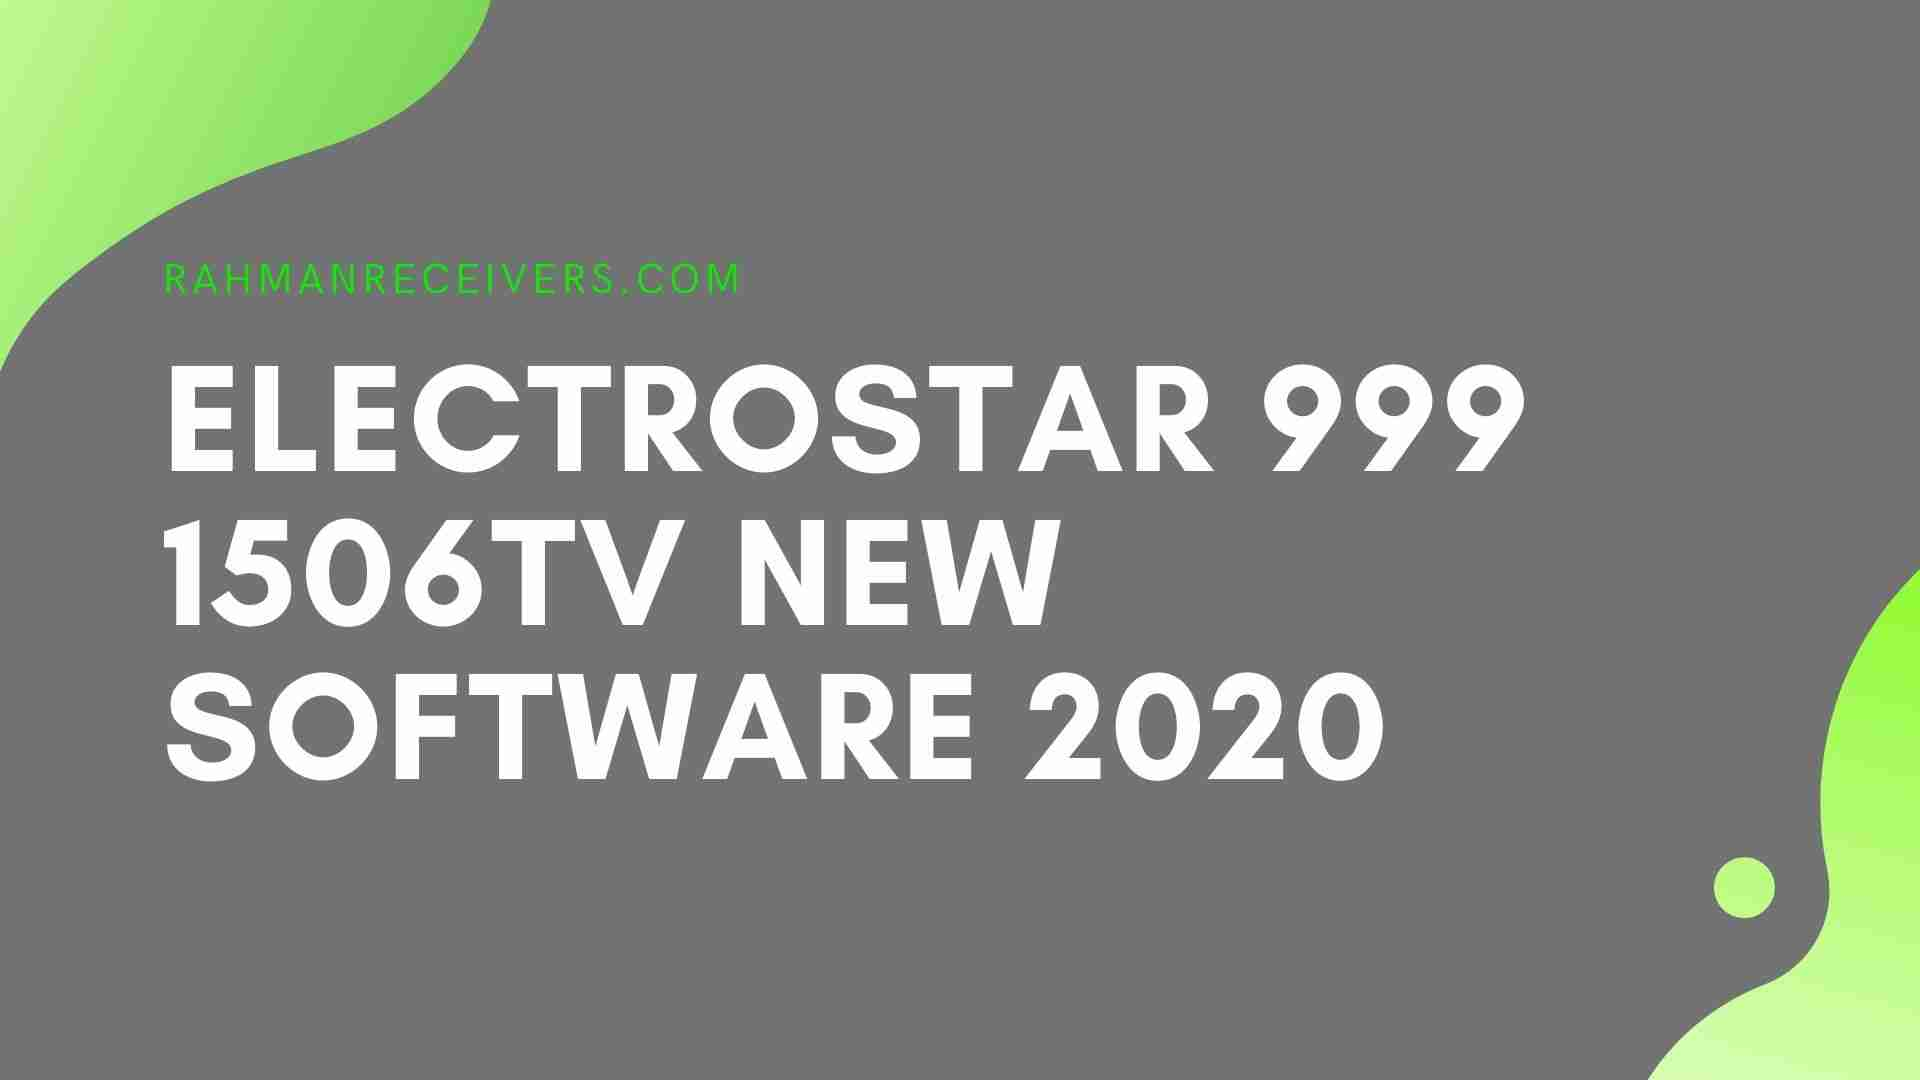 ELECTROSTAR 999 1506TV NEW SOFTWARE WITH G SHARE PLUS & NASHARE PRO OPTION 22 JUNE 2020